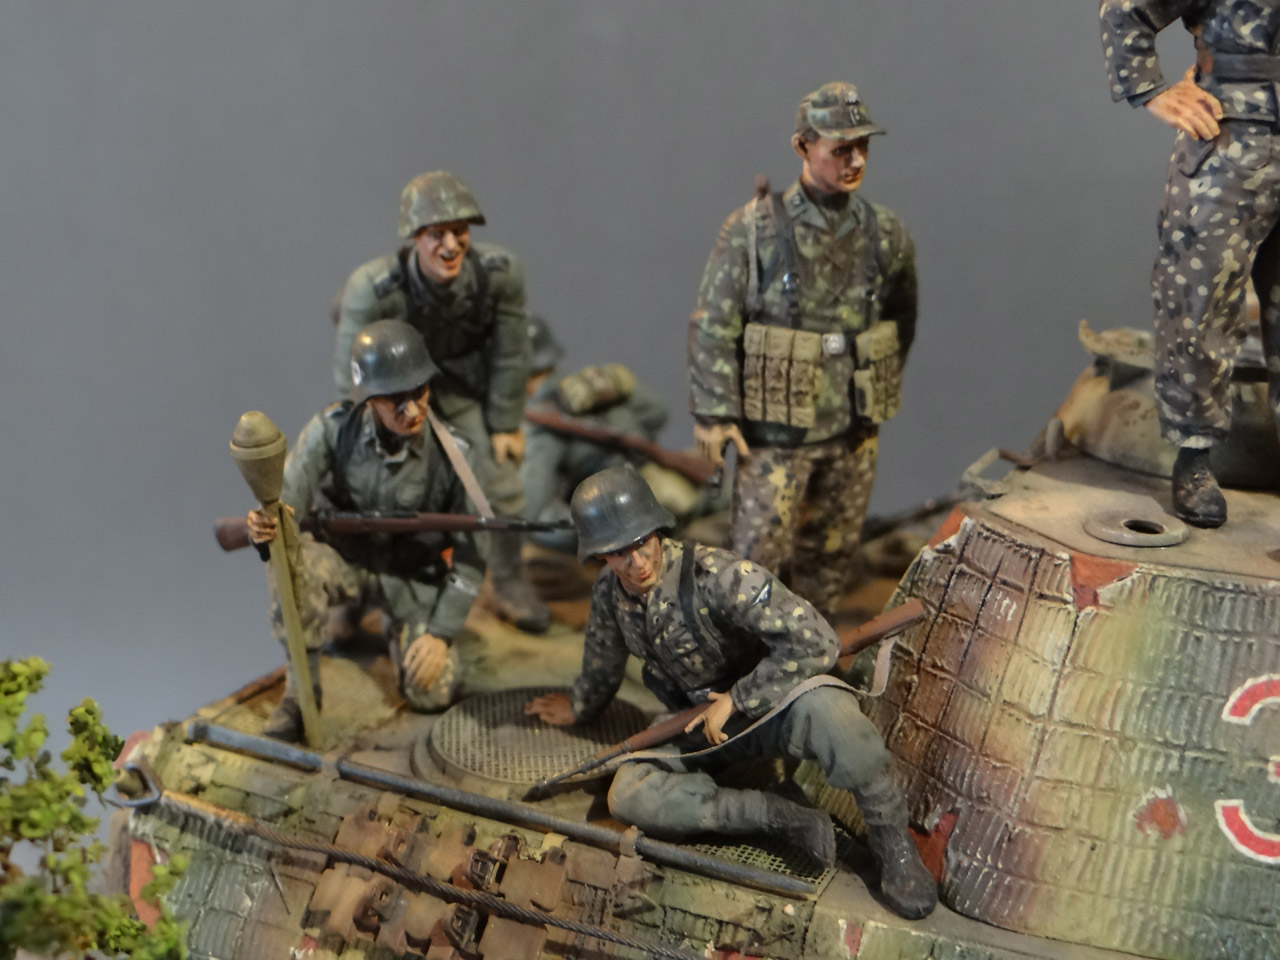 Dioramas and Vignettes: Normandy, 1944, photo #12